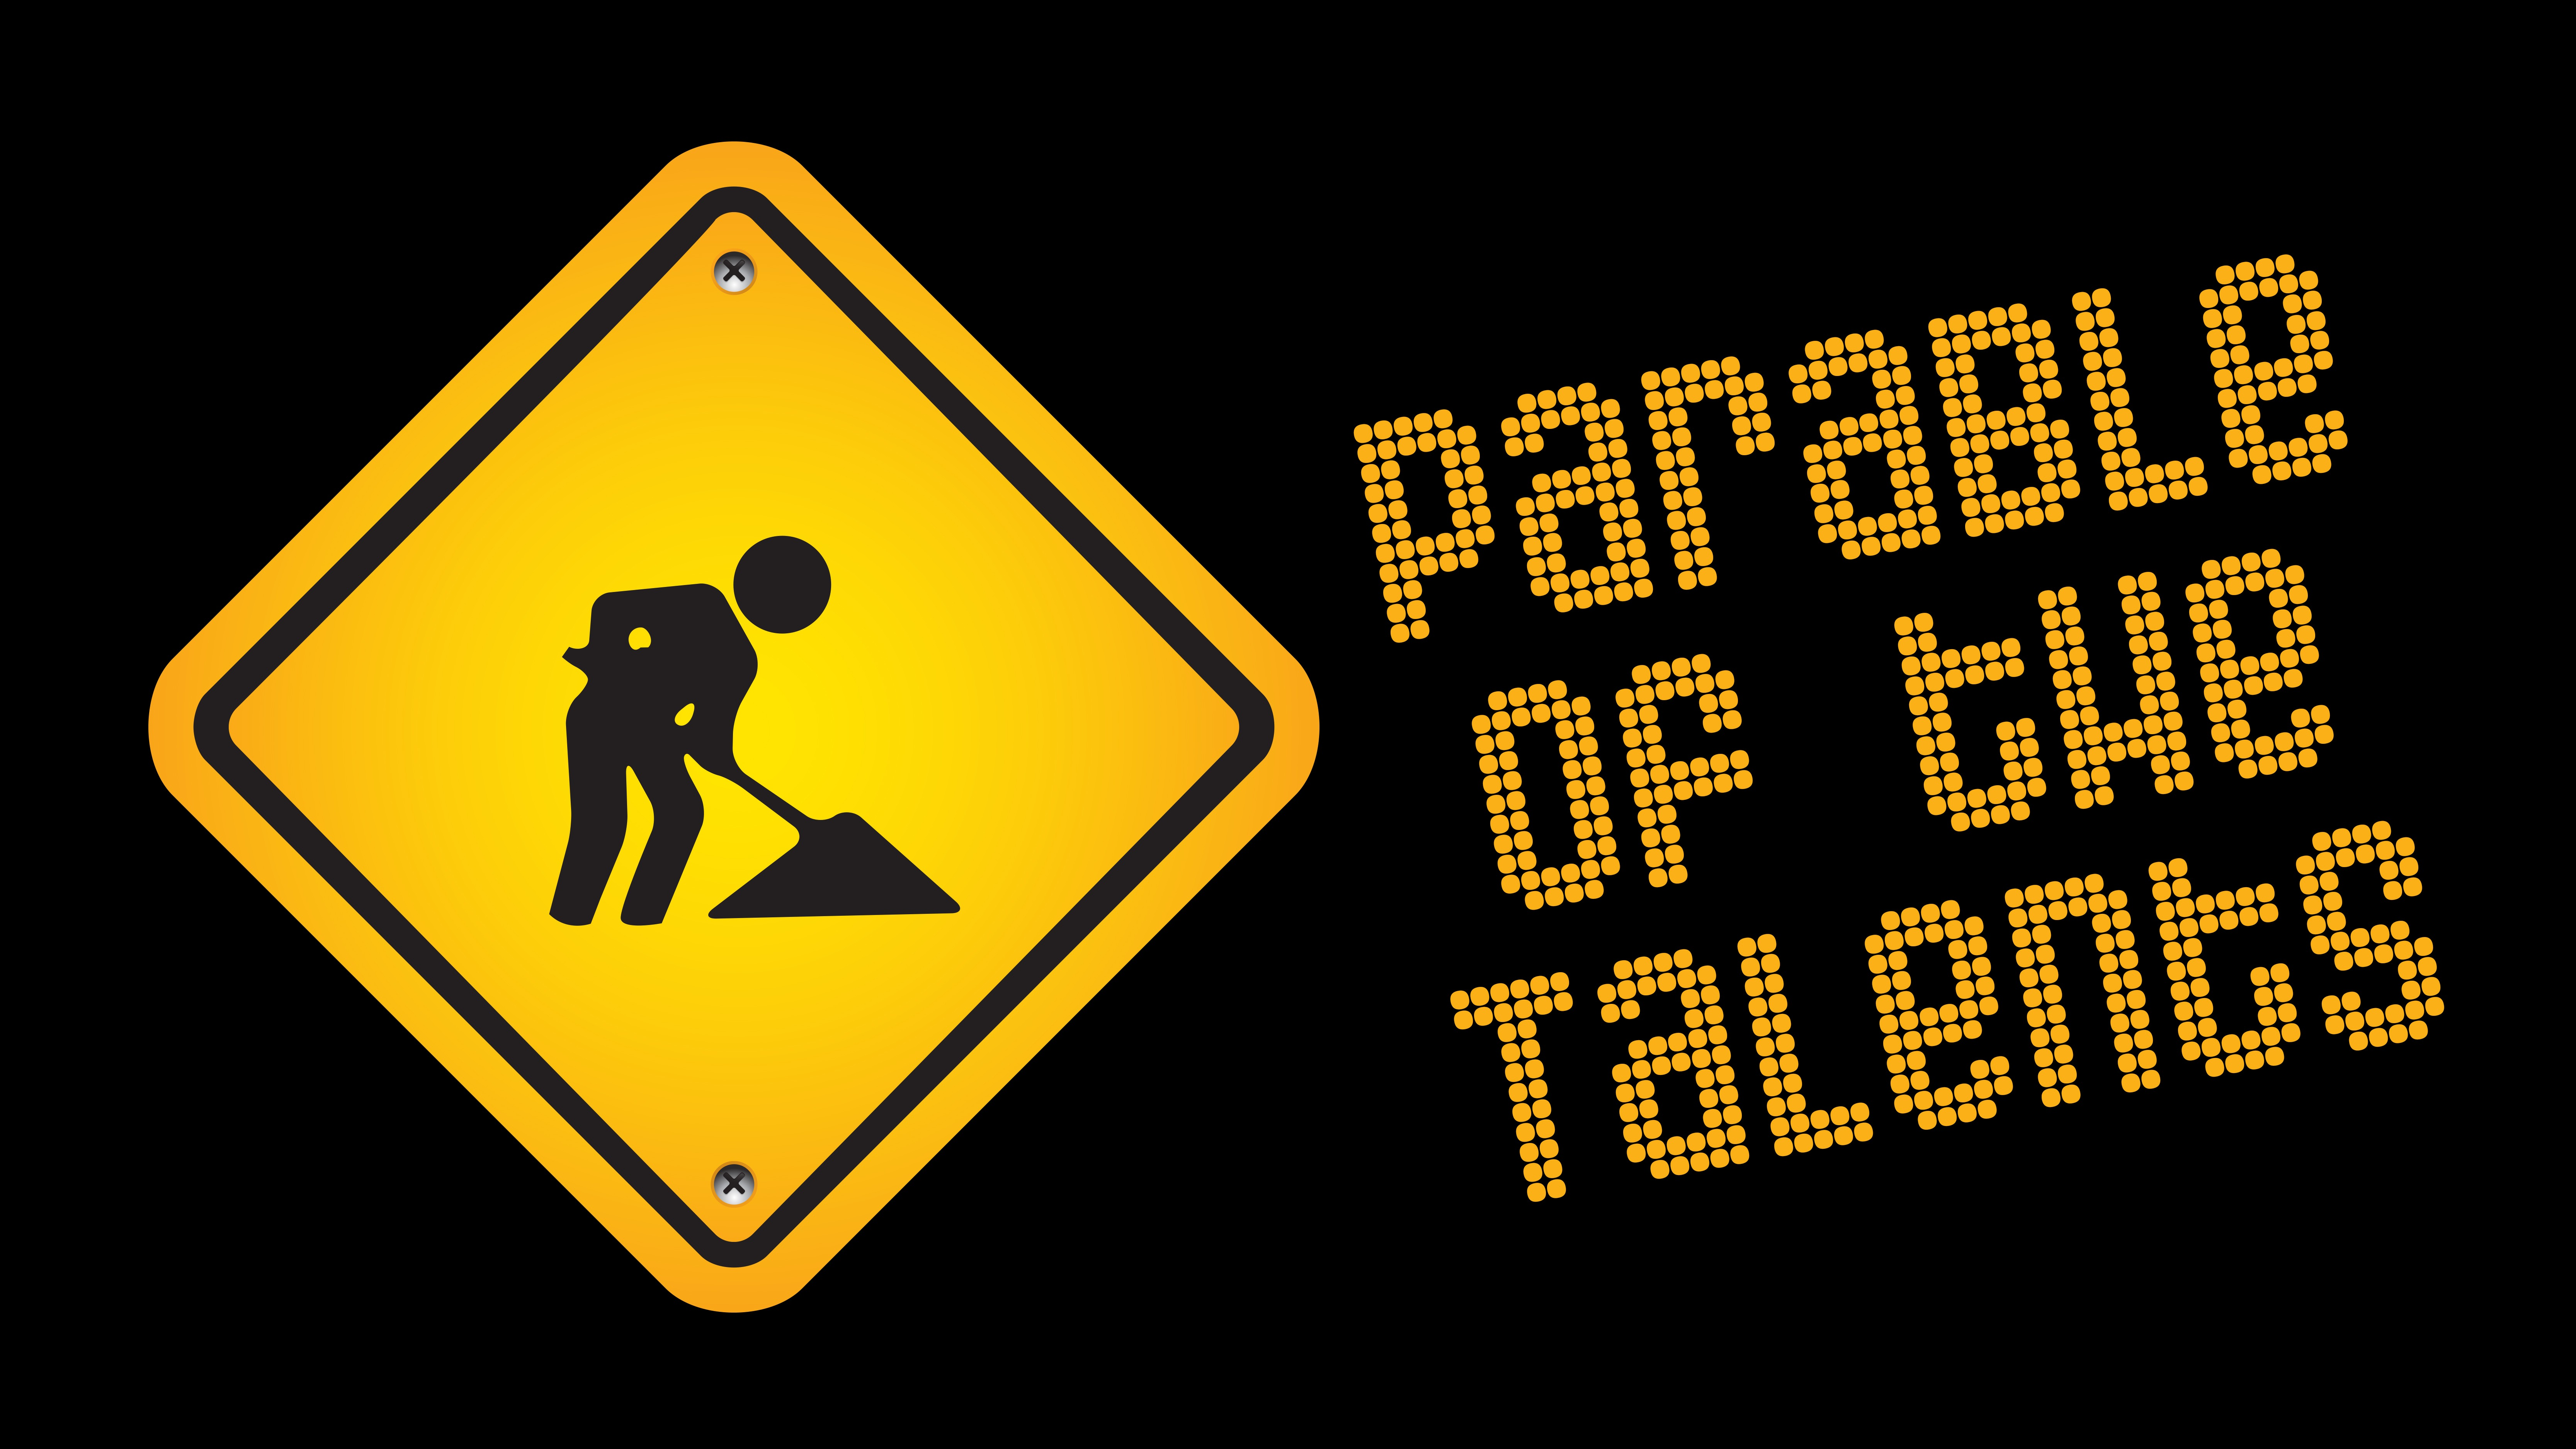 Meaning of parable of talents - Simply Click Here For The Parable Of The Talents Childrens Lesson Widescreen Powerpoint Image